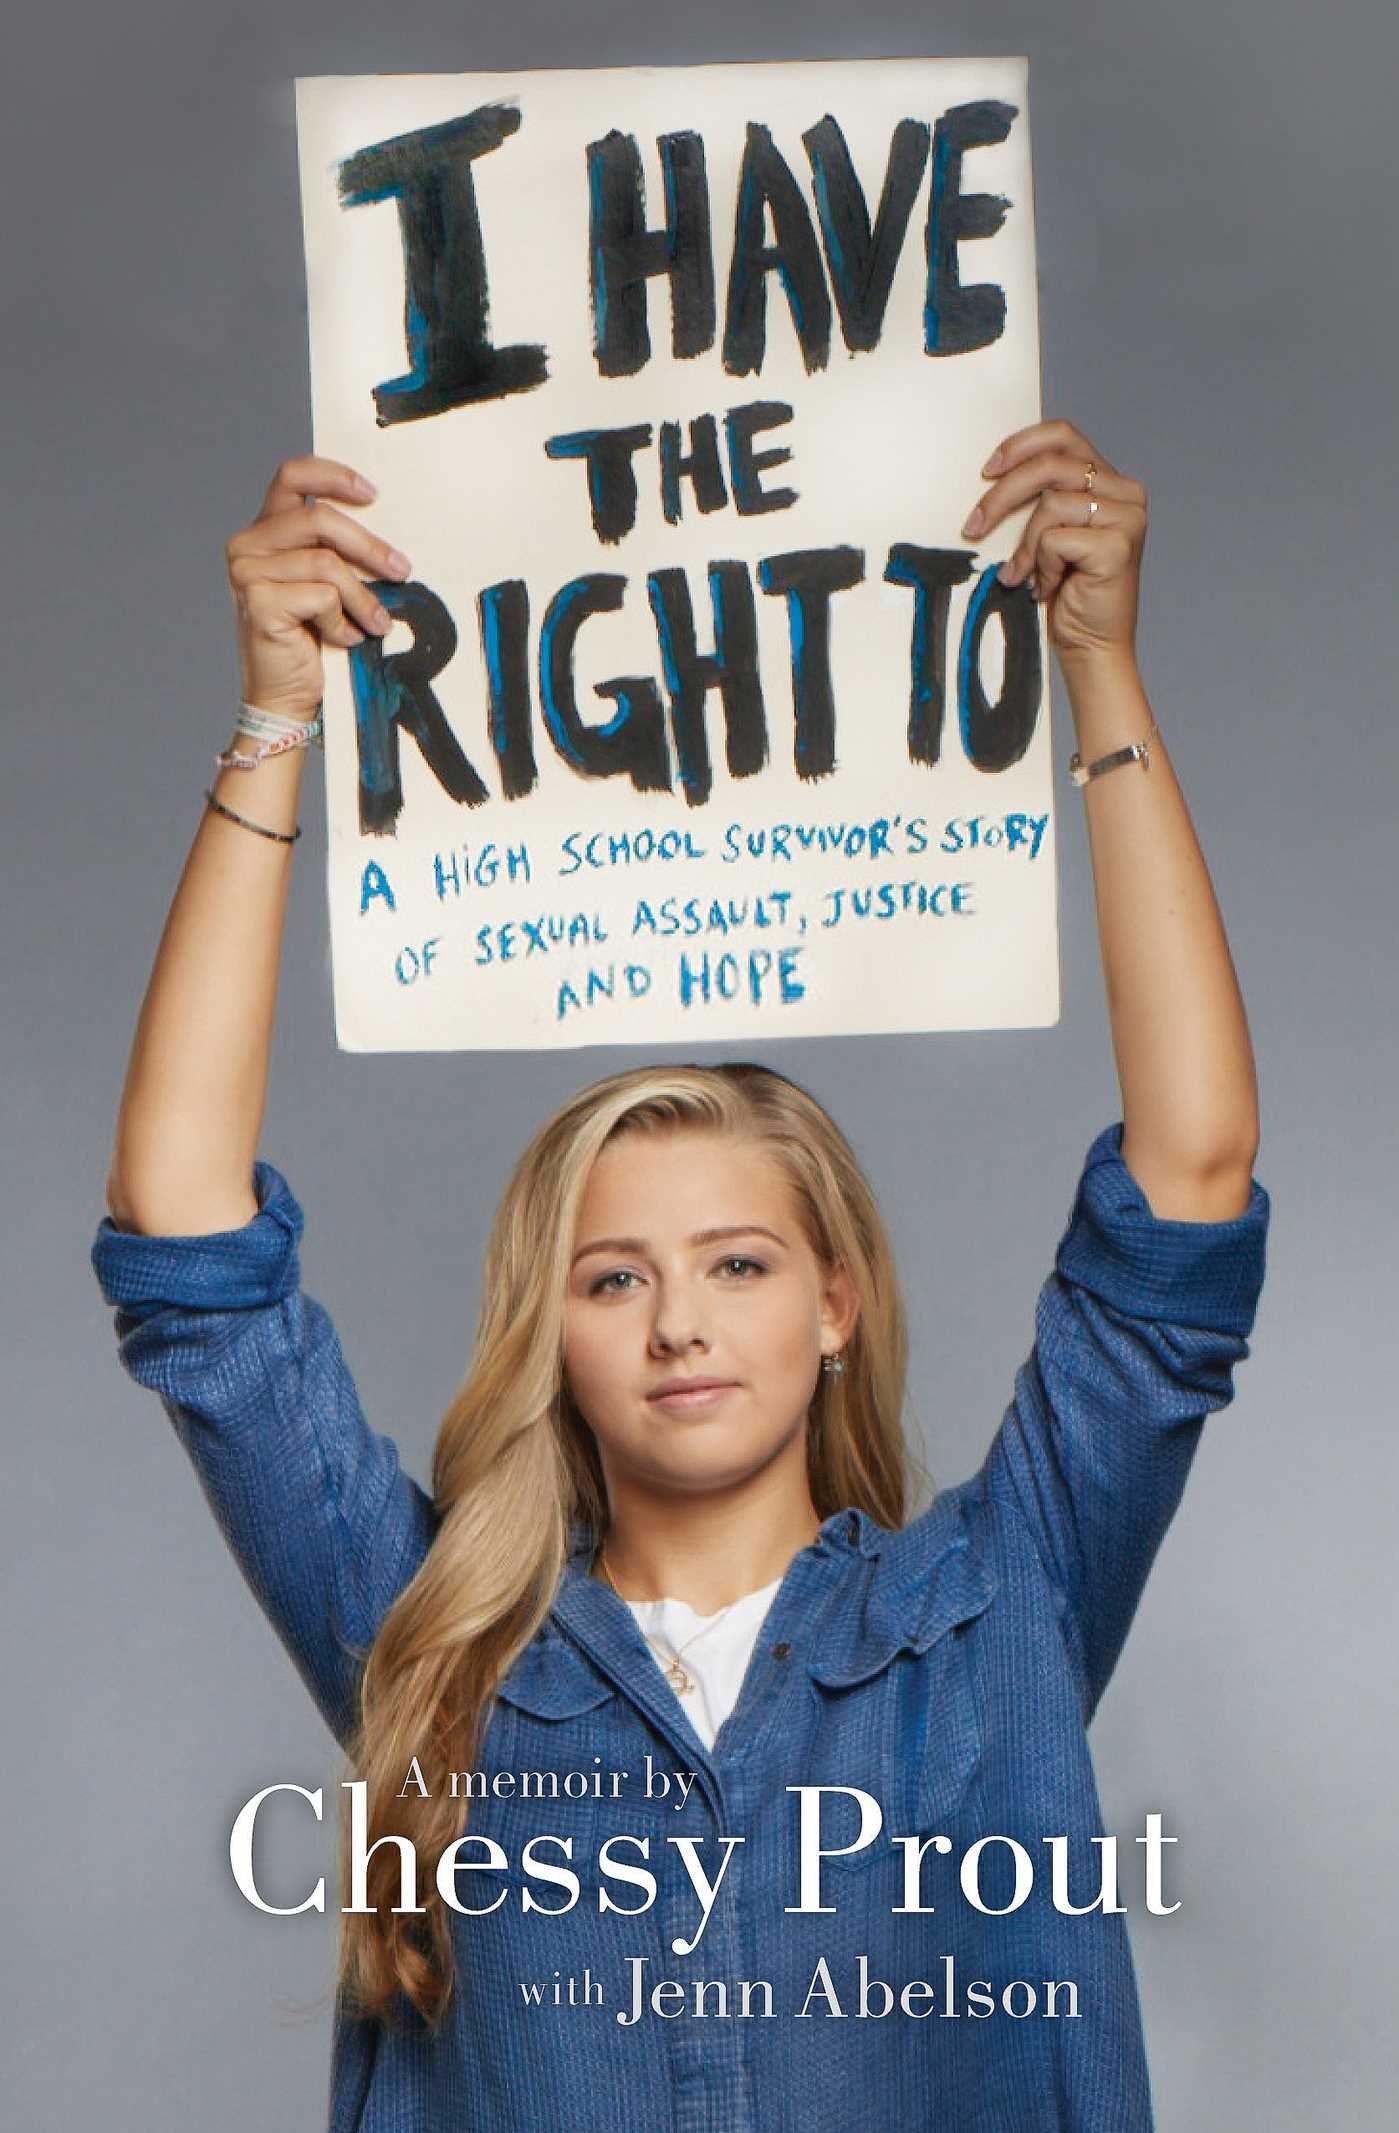 Image result for I have the right to memoir cover